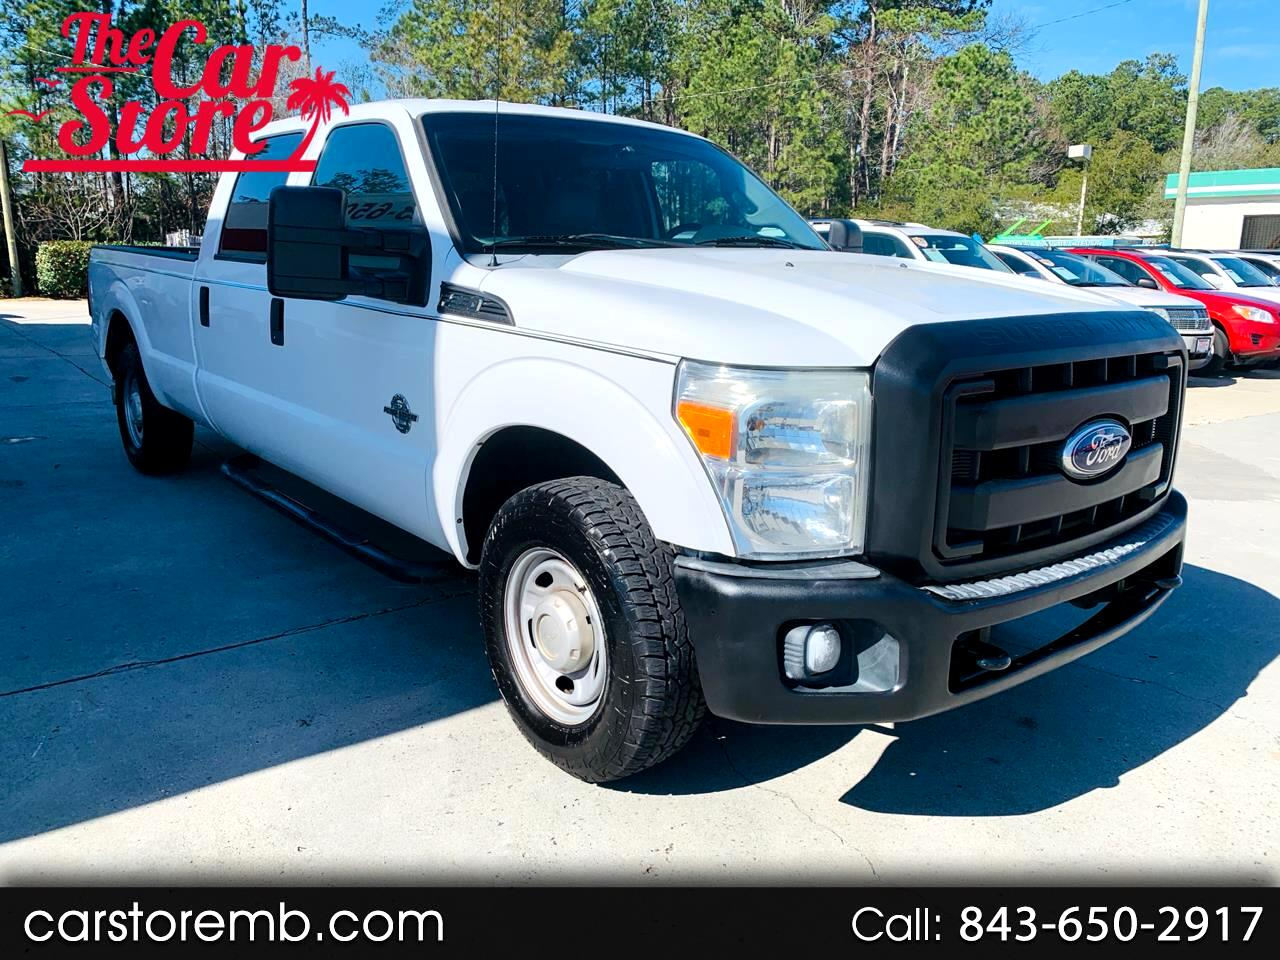 Ford F-350 SD XL Crew Cab Long Bed 2WD 2012